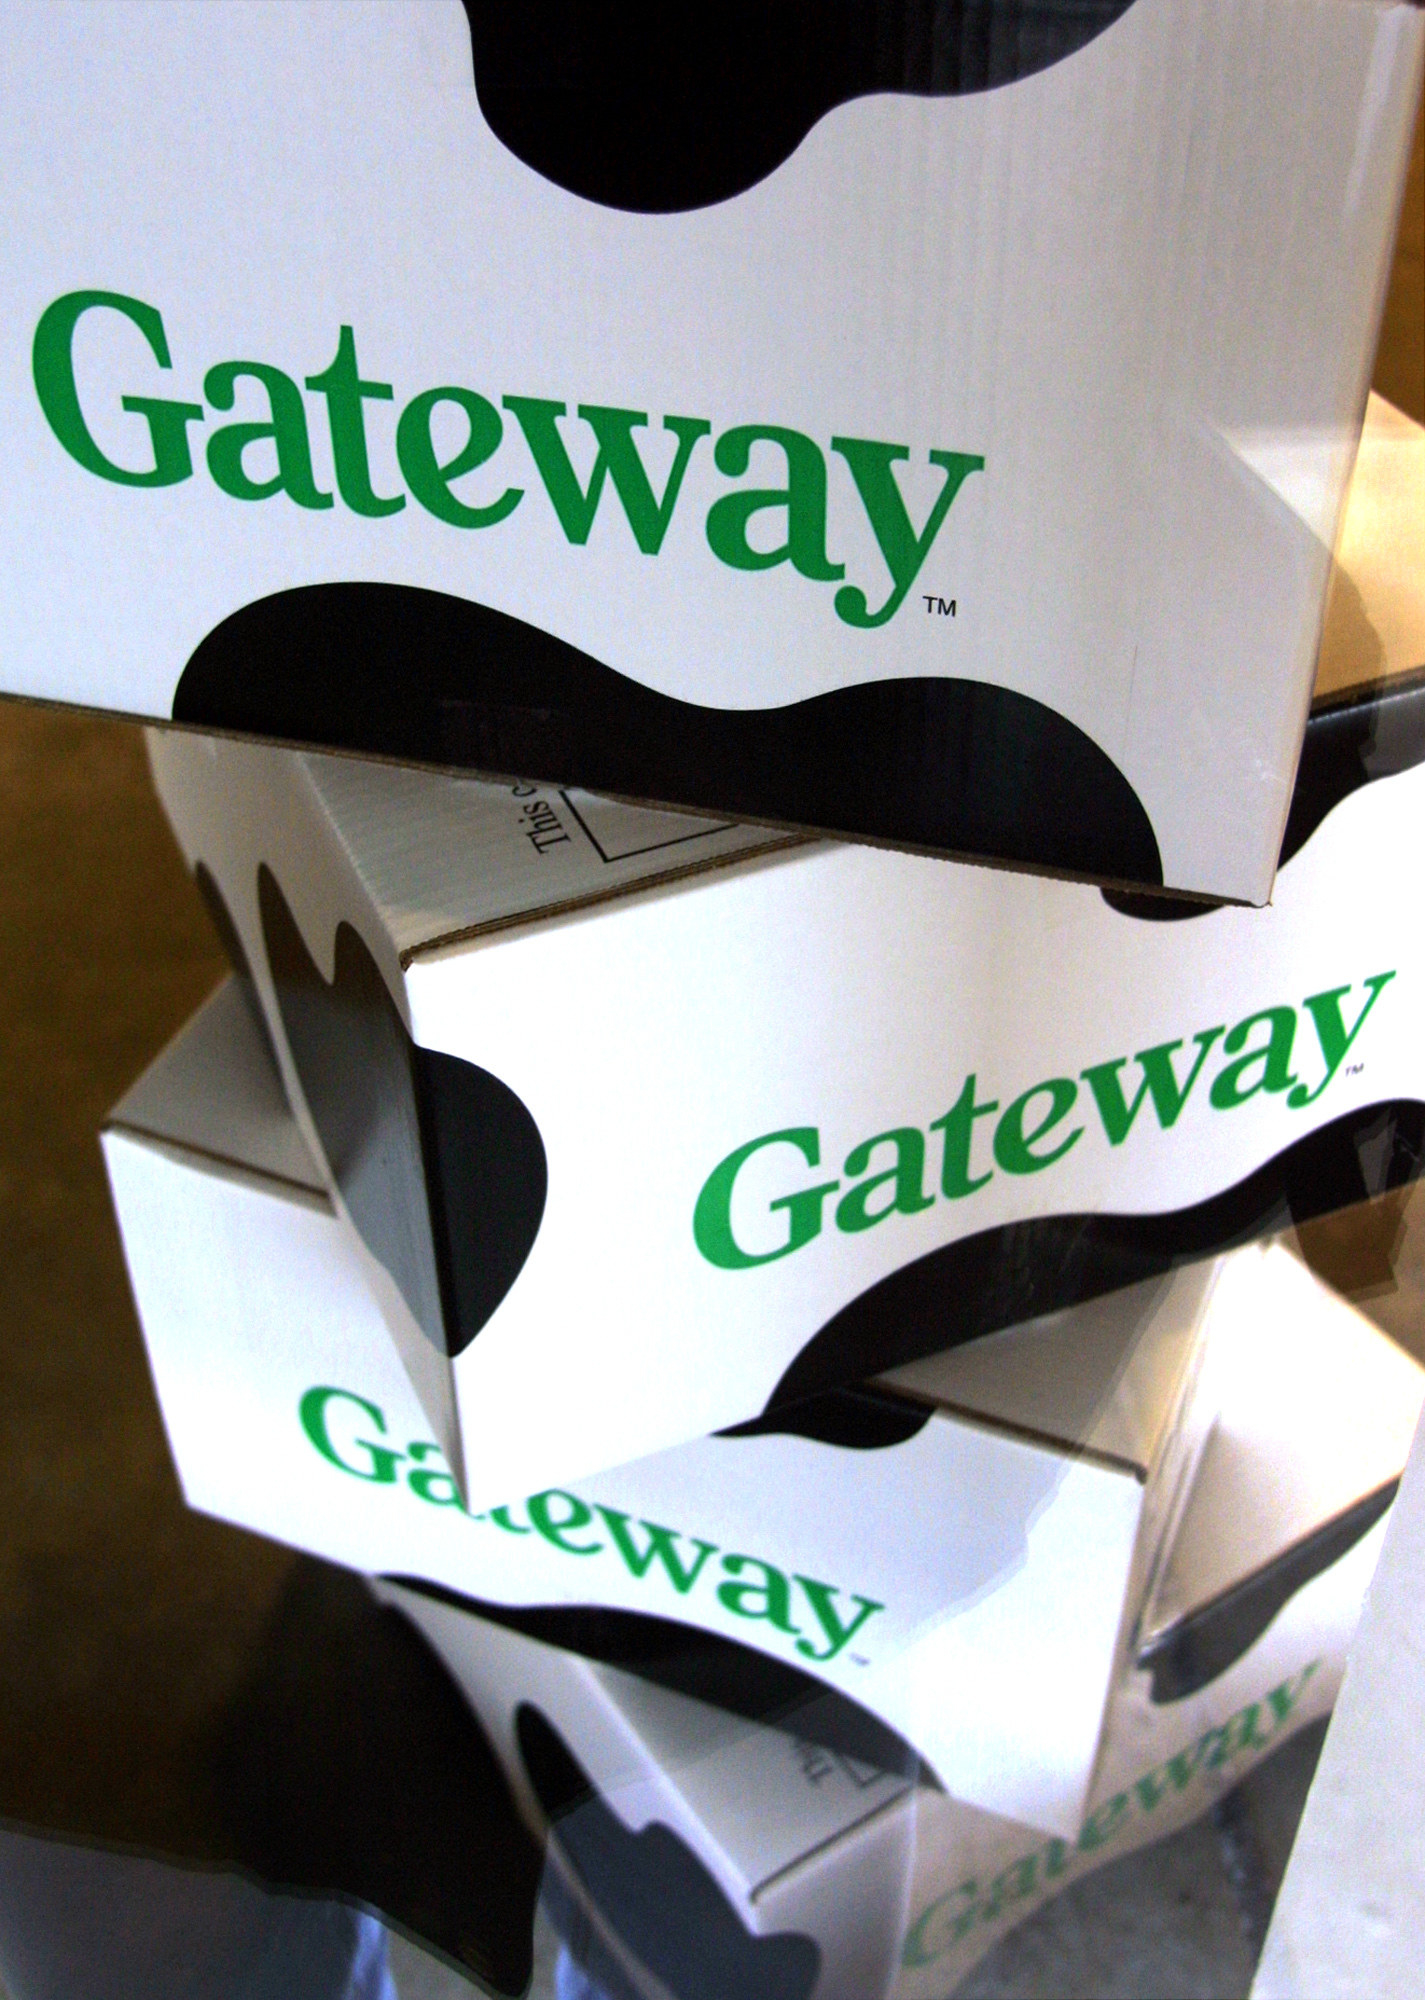 A stack four Gateway computer boxes.